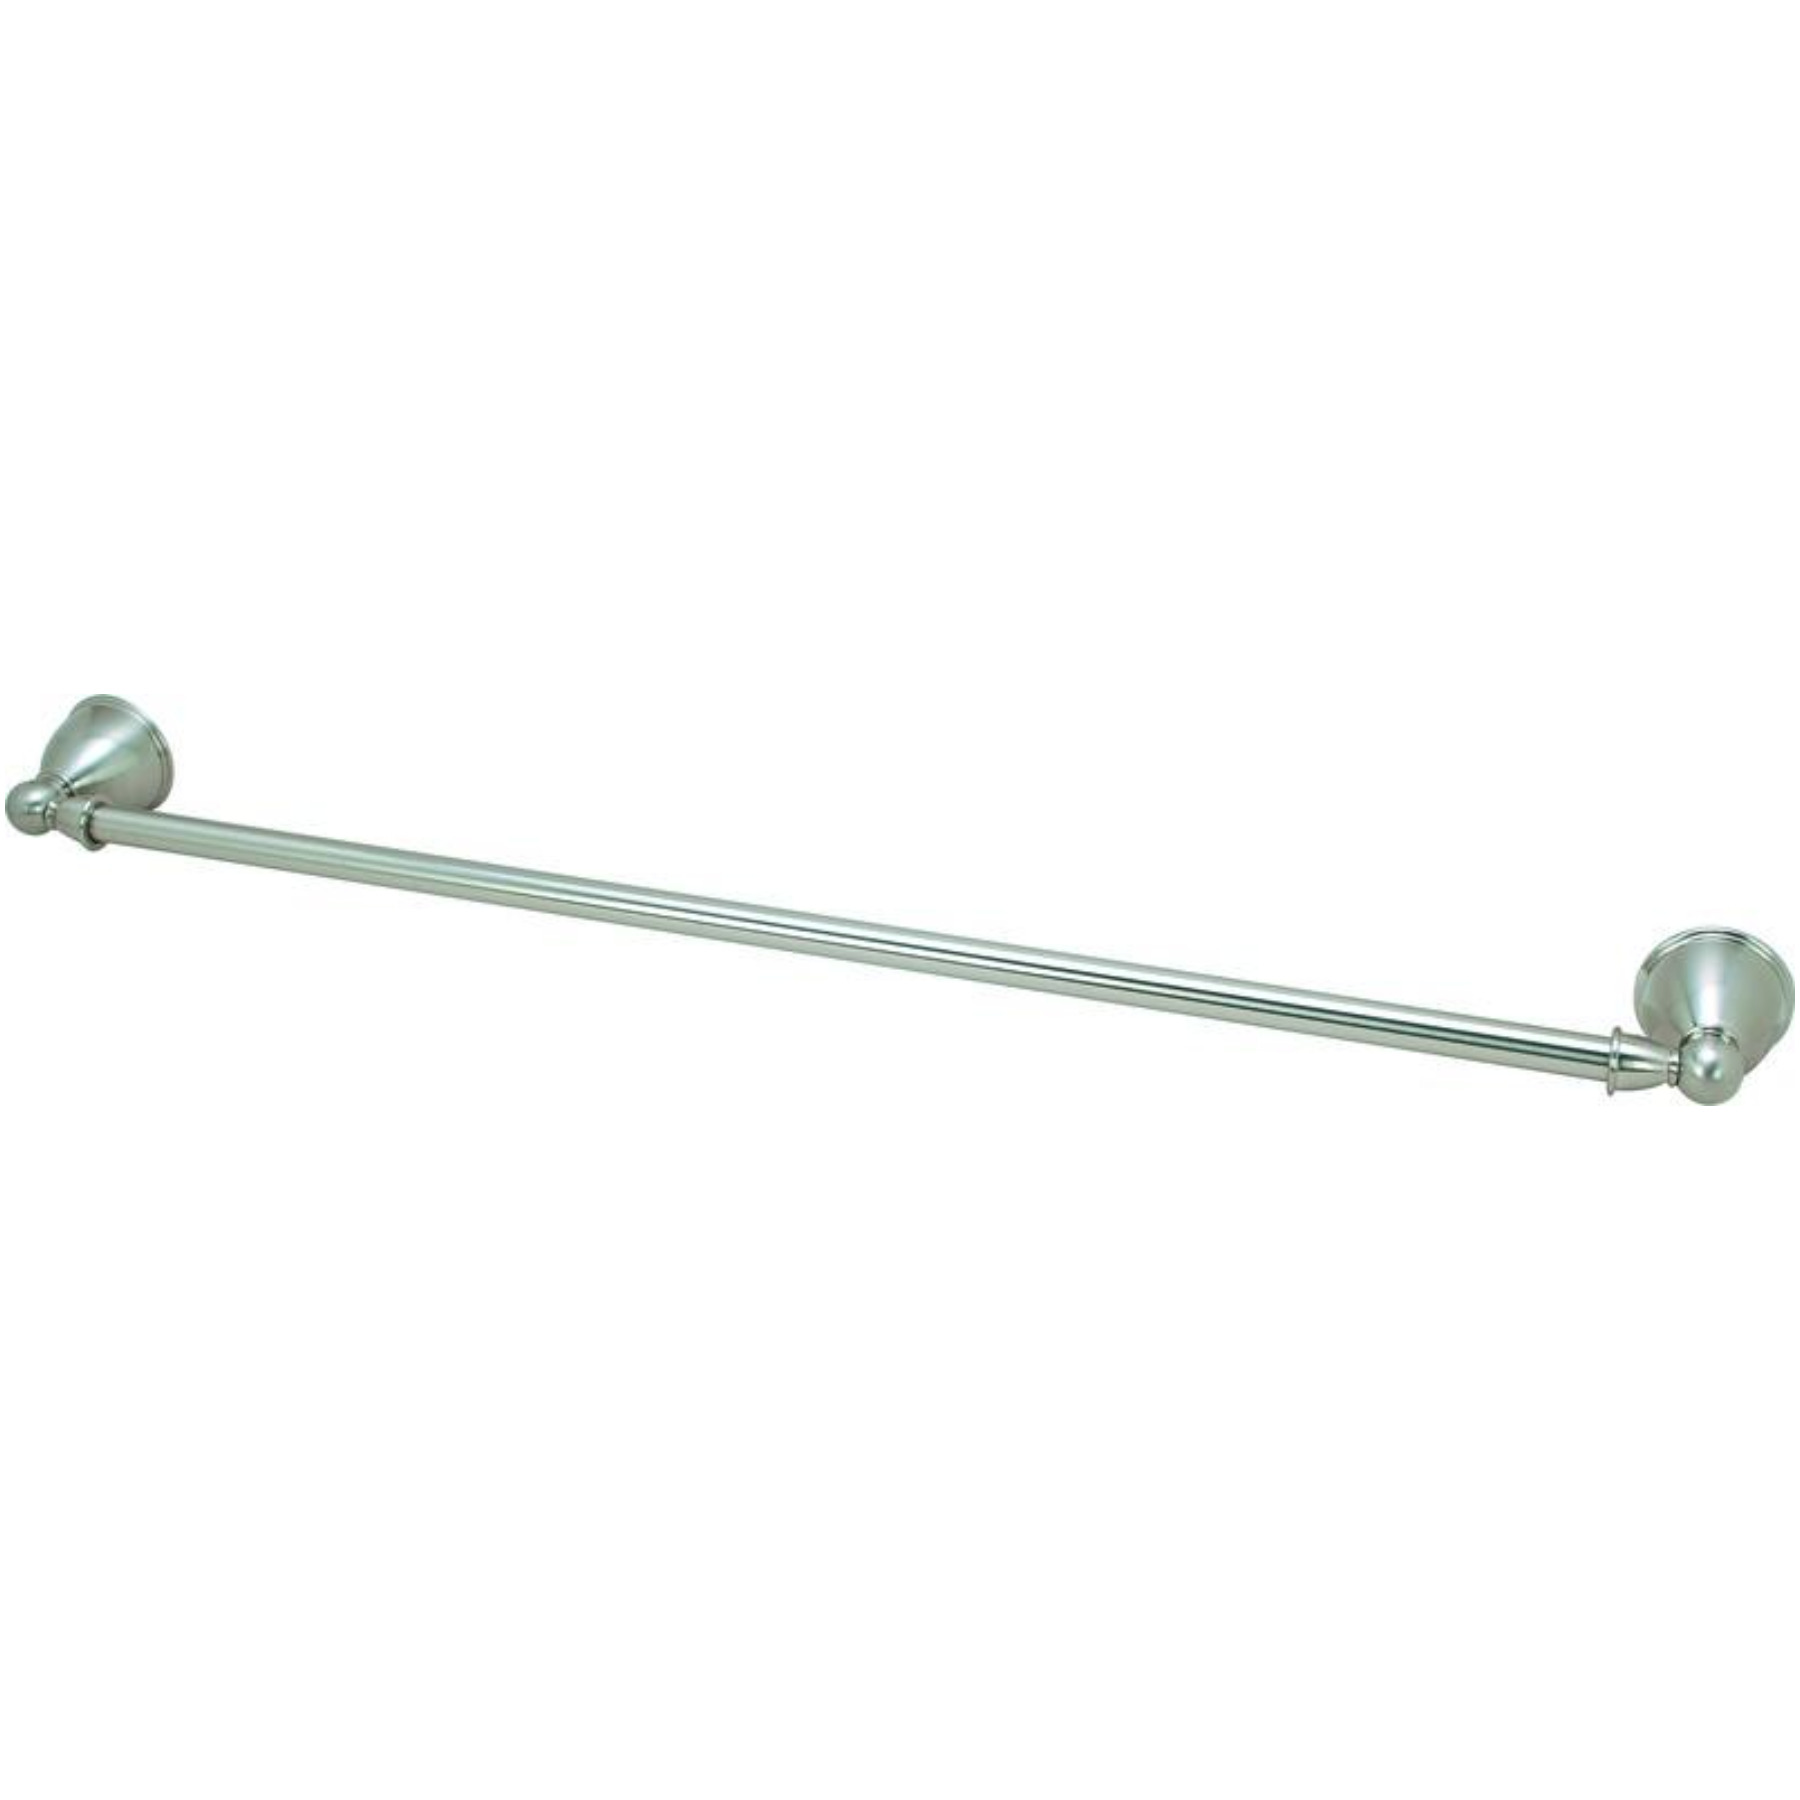 38-7571 SA NI 24 FT. TOWEL BAR